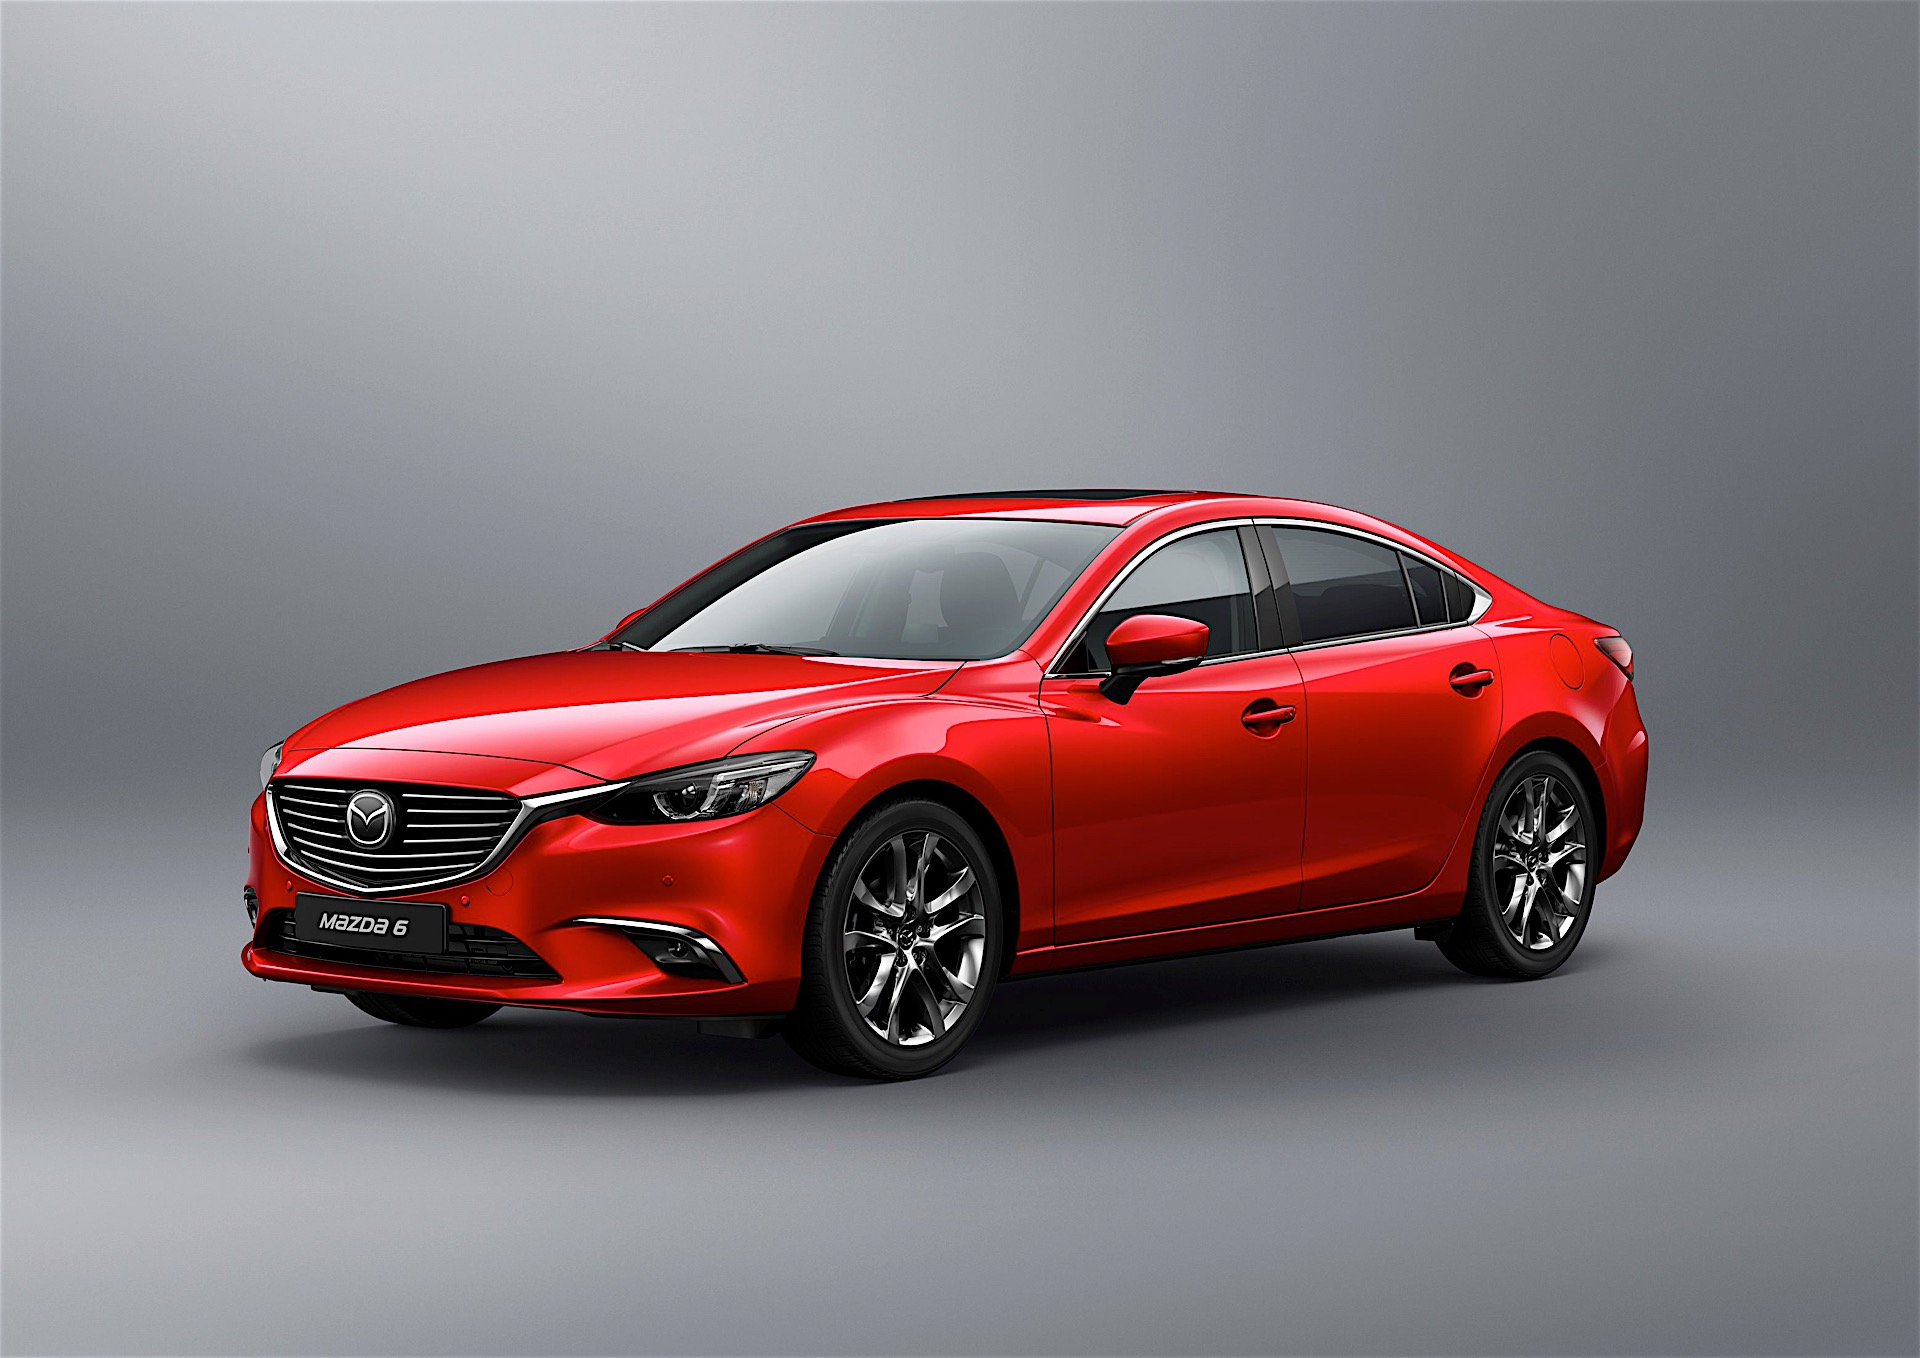 2017 Mazda6 Will Be Launched In Europe This Autumn, Has G